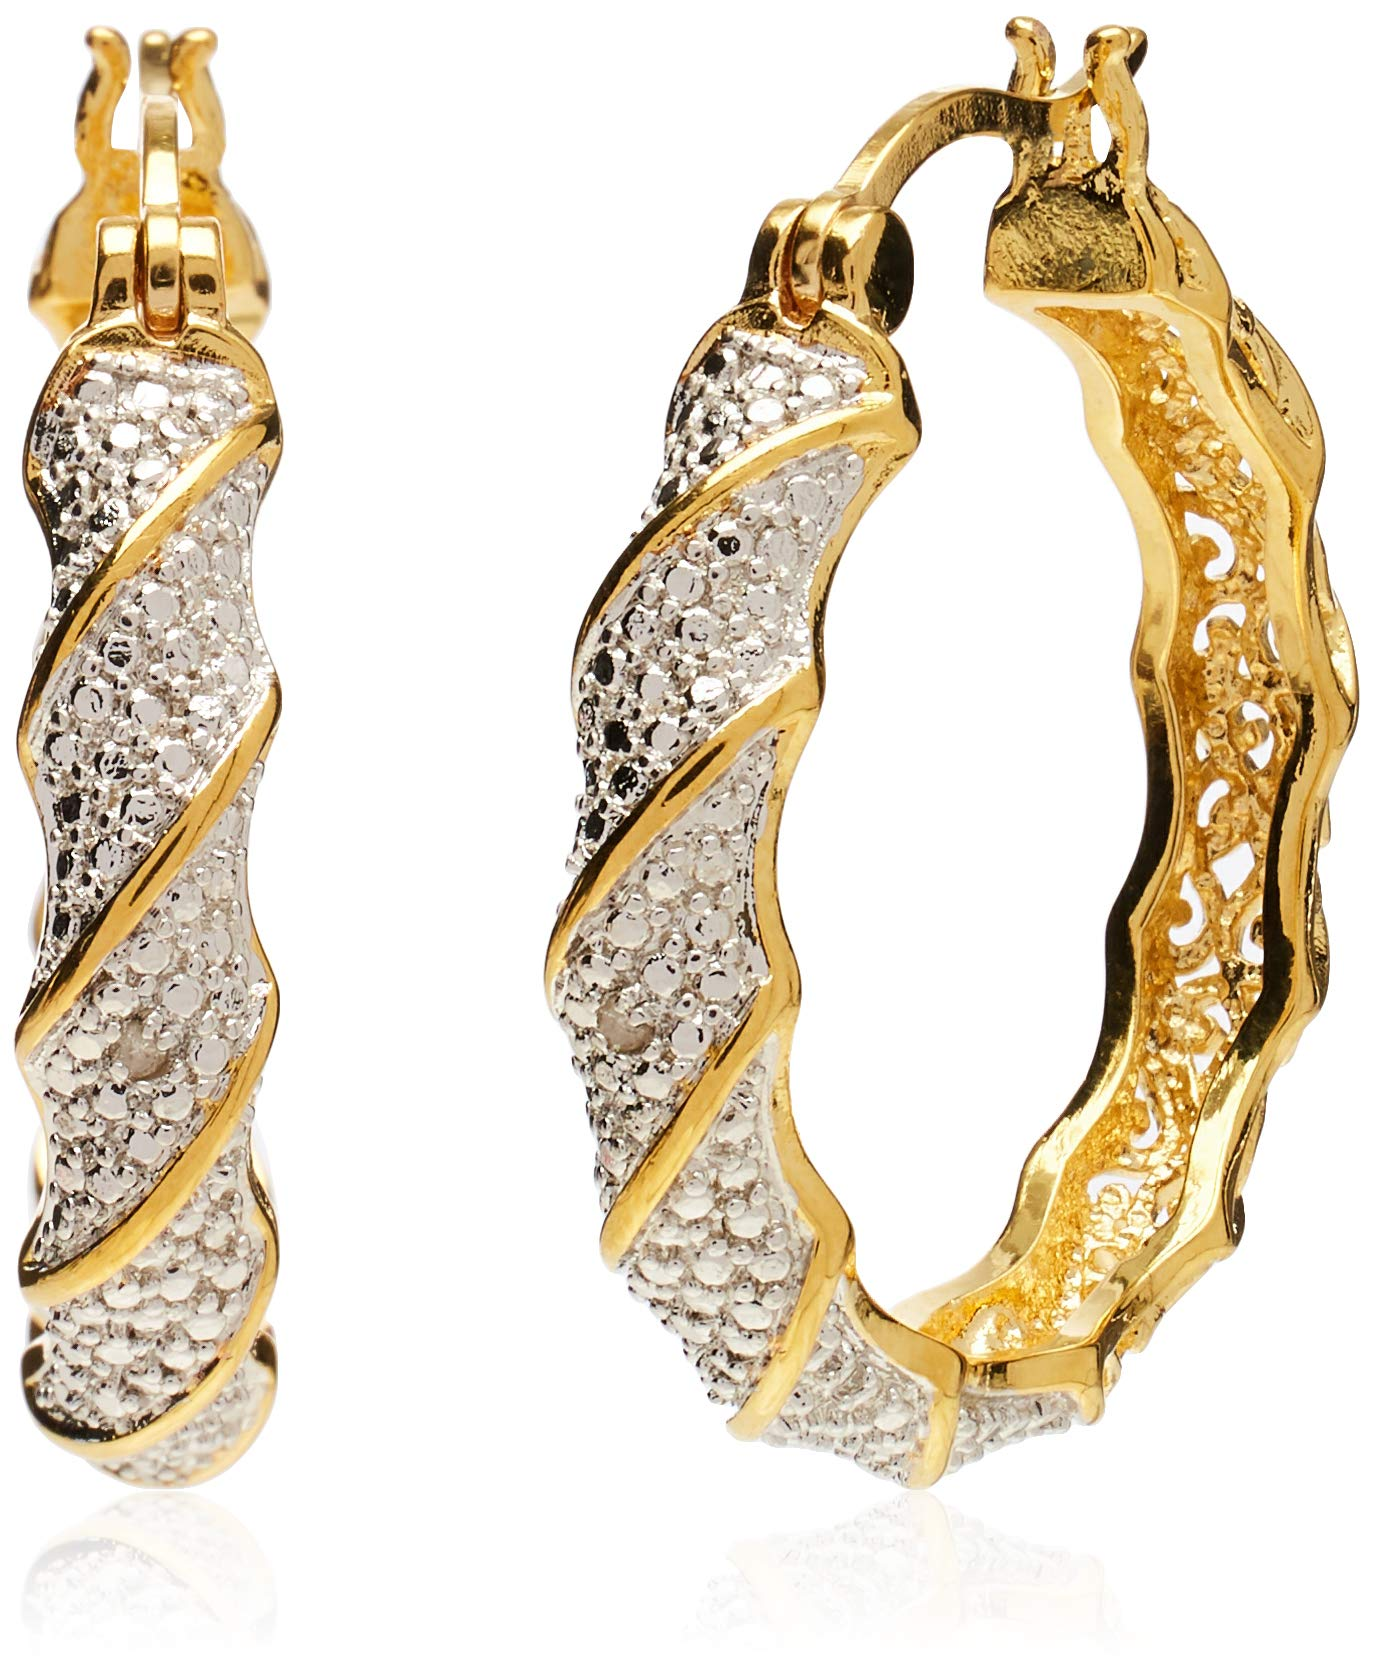 1a35c09f4 18k Yellow Gold-Plated Two-Tone Diamond Accent Twisted Hoop Earrings  product image